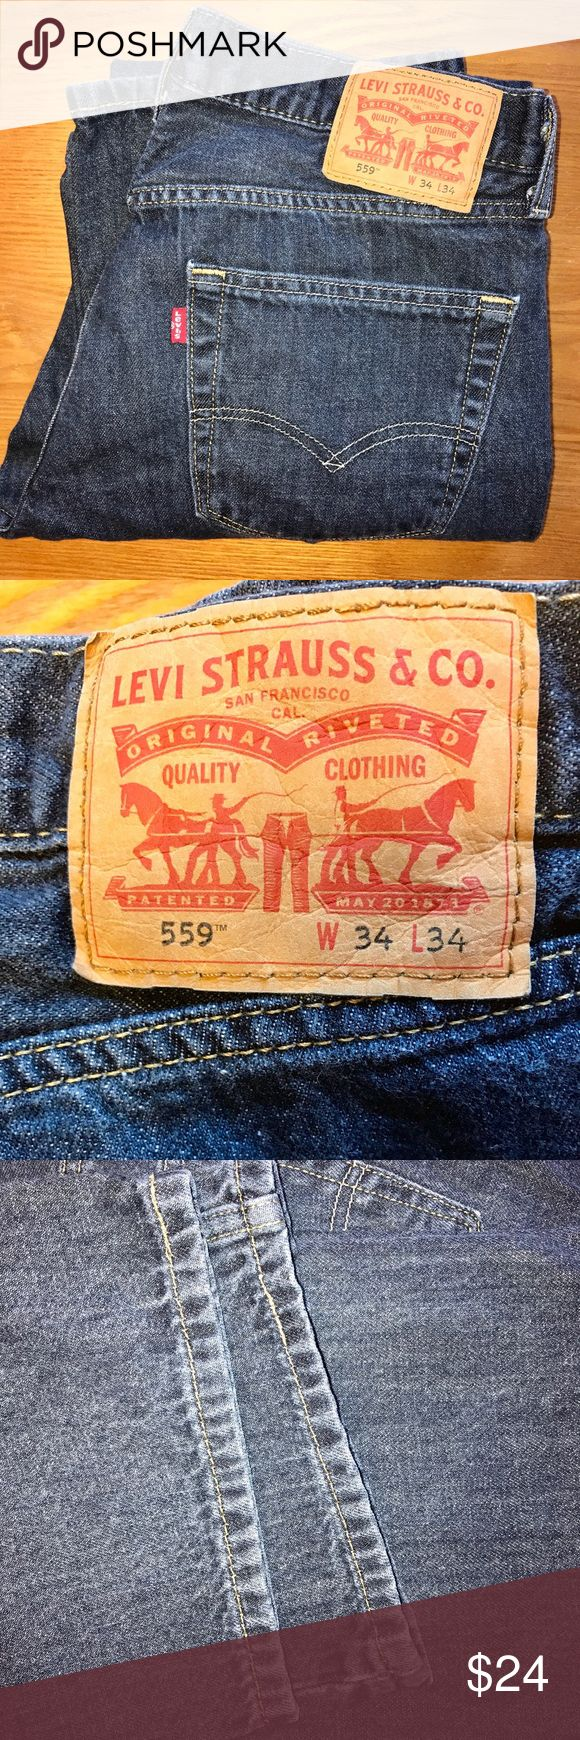 "Men's LEVI 559 Relaxed Straight Leg Jeans. 34x34 Men's LEVI 559 Relaxed Straight Leg Jeans.  Size 34x34 Nice medium colored wash for everyday wear. GUC- no holes, stains or damage noted   ""Levi's® 559™ Relaxed Straight Jeans are made for guys who like to be comfortable. They sit below the waist with extra room through thigh and a straight leg. Wear them with a henley shirt and your favorite sneakers. This pair has just the right amount of stretch in it for all-day comfort.""  FAST shipping…"